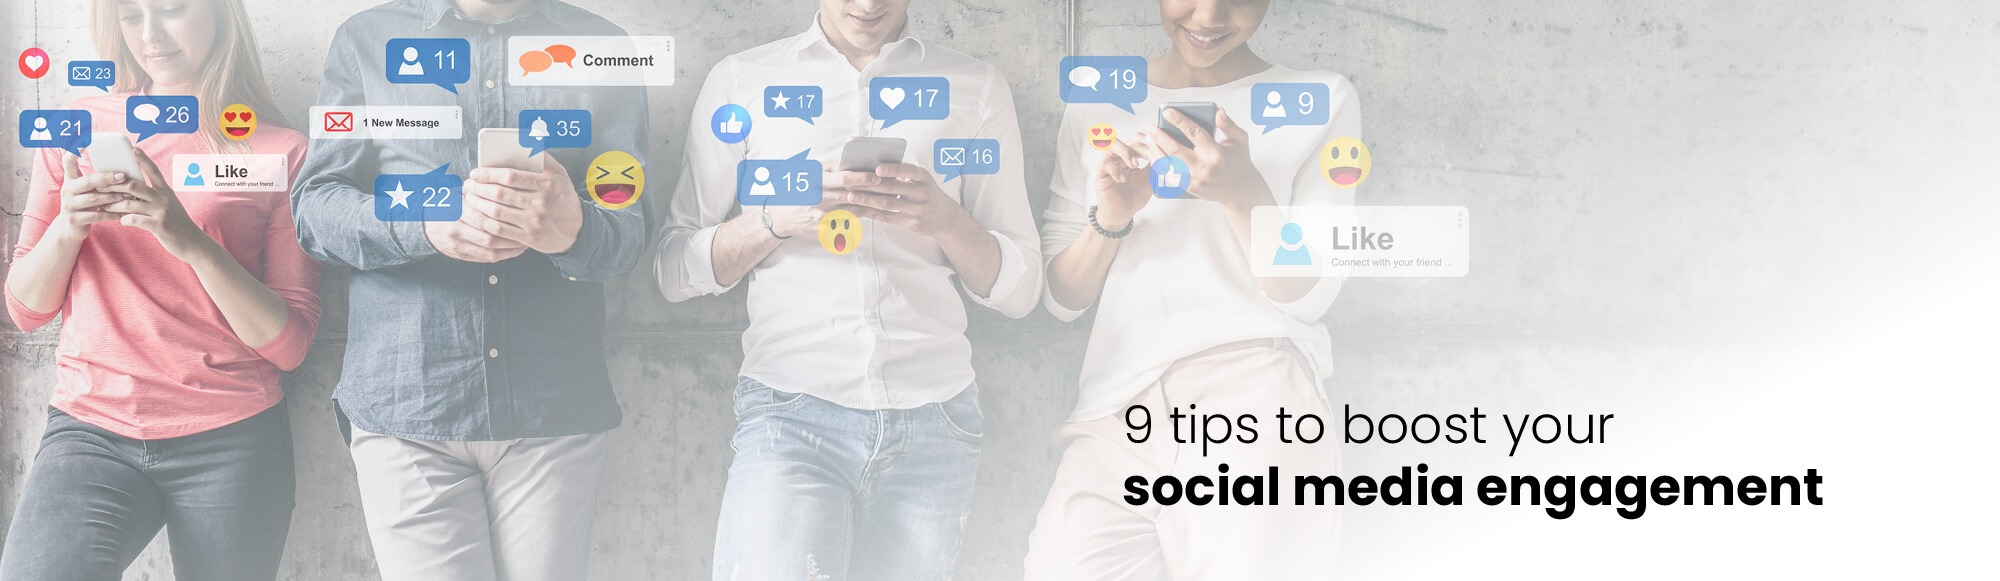 9 Ways to Increase Engagement on Social Media